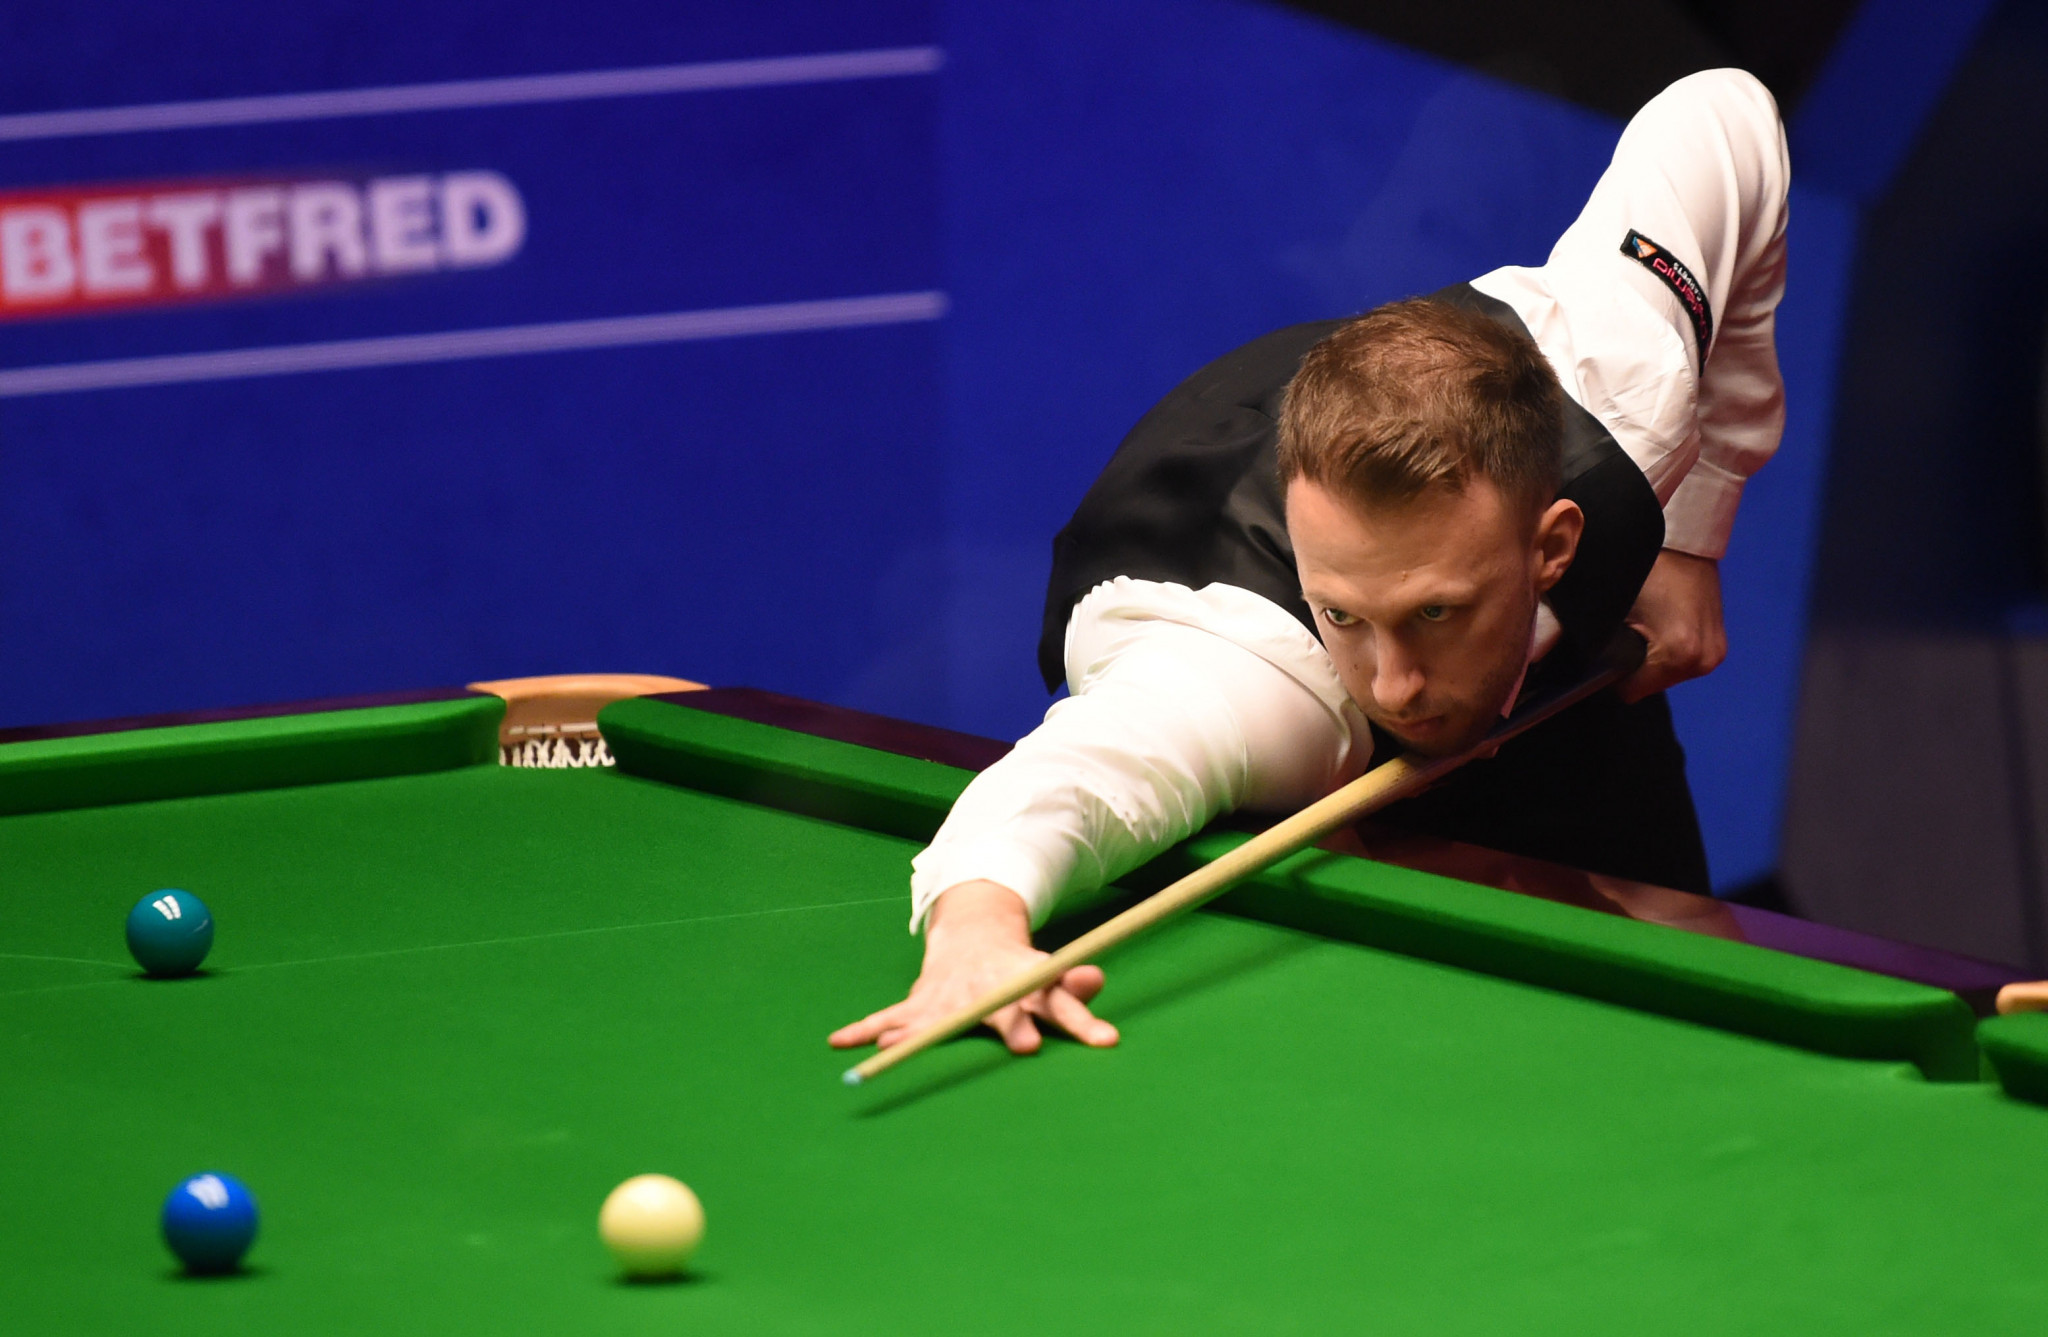 Former champions Williams, Selby and Trump reach World Snooker Championship quarter-finals